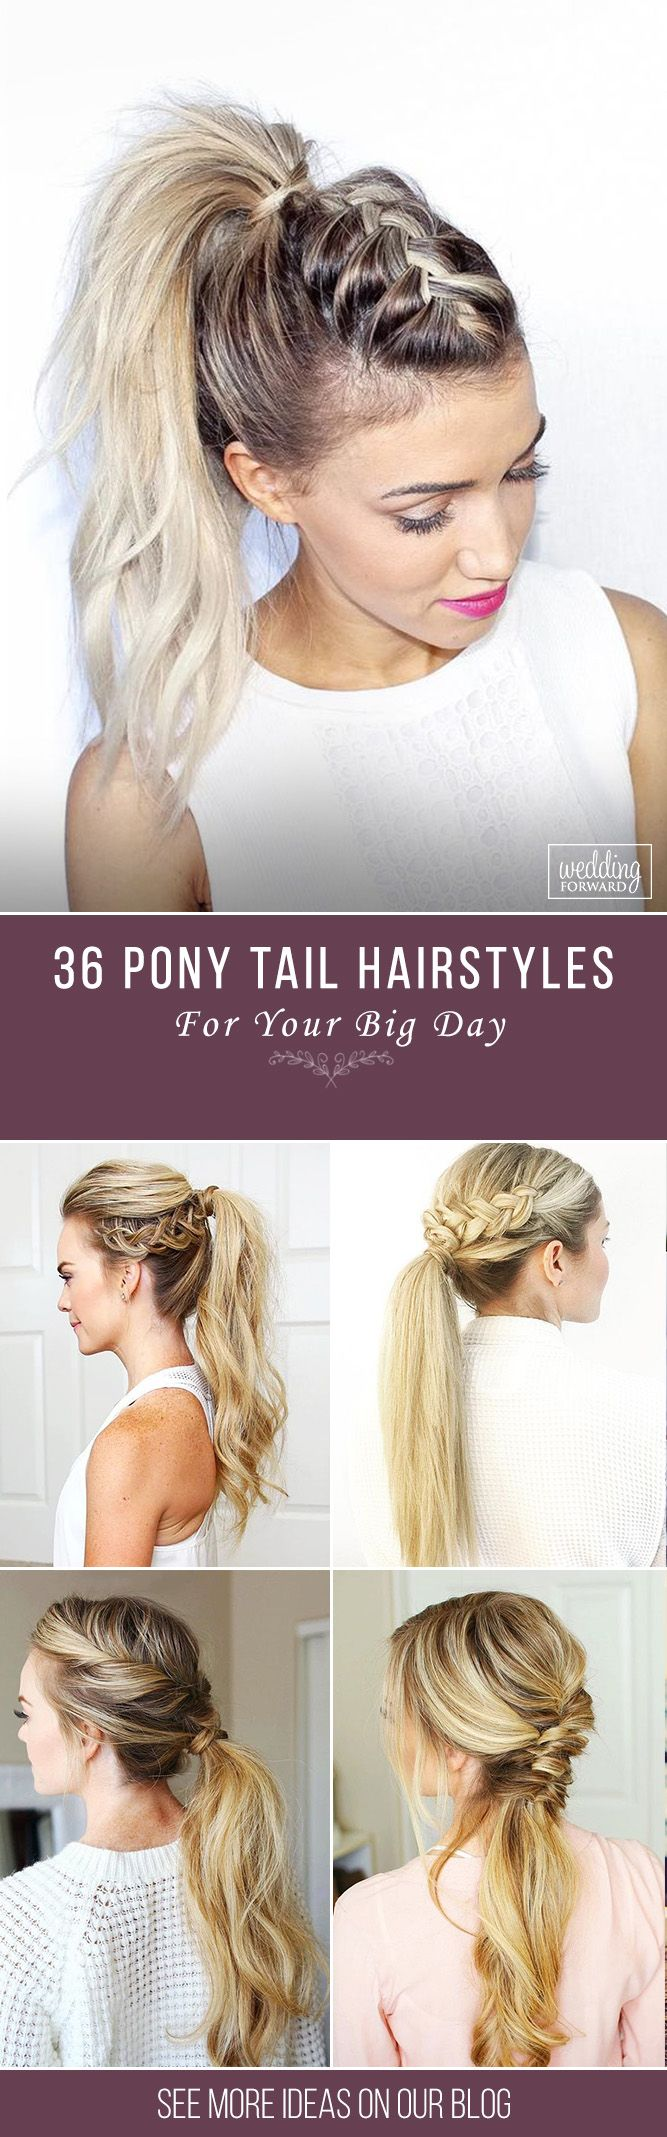 36 Party Perfect Pony Tail Hairstyles For Your Big Day ❤Pony tail hairstyles a...